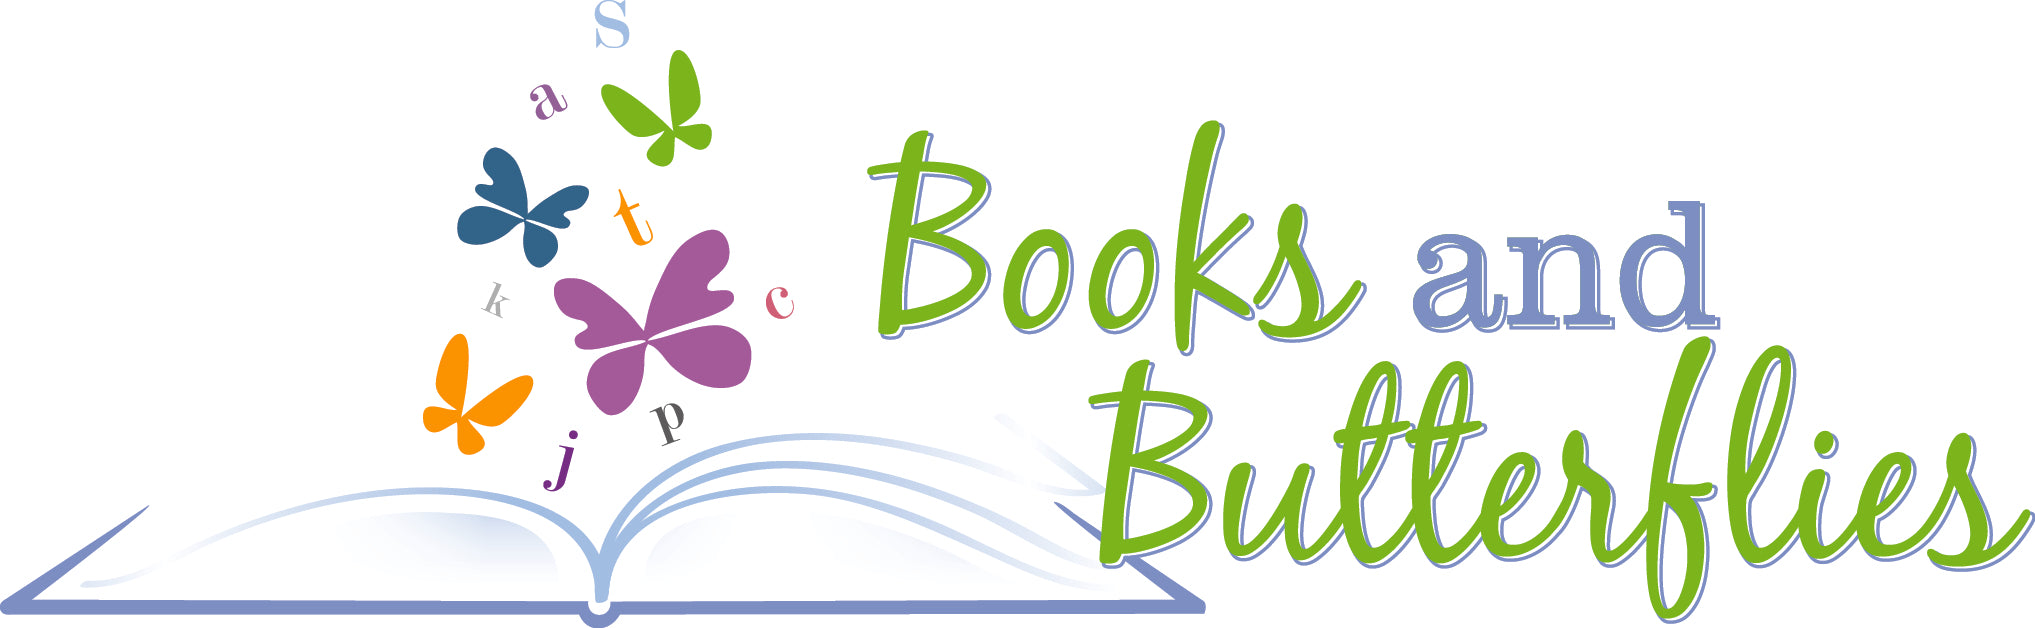 Goodnight St Louis Authors to Read at Books and Butterflies Event, Nov 6, 2018